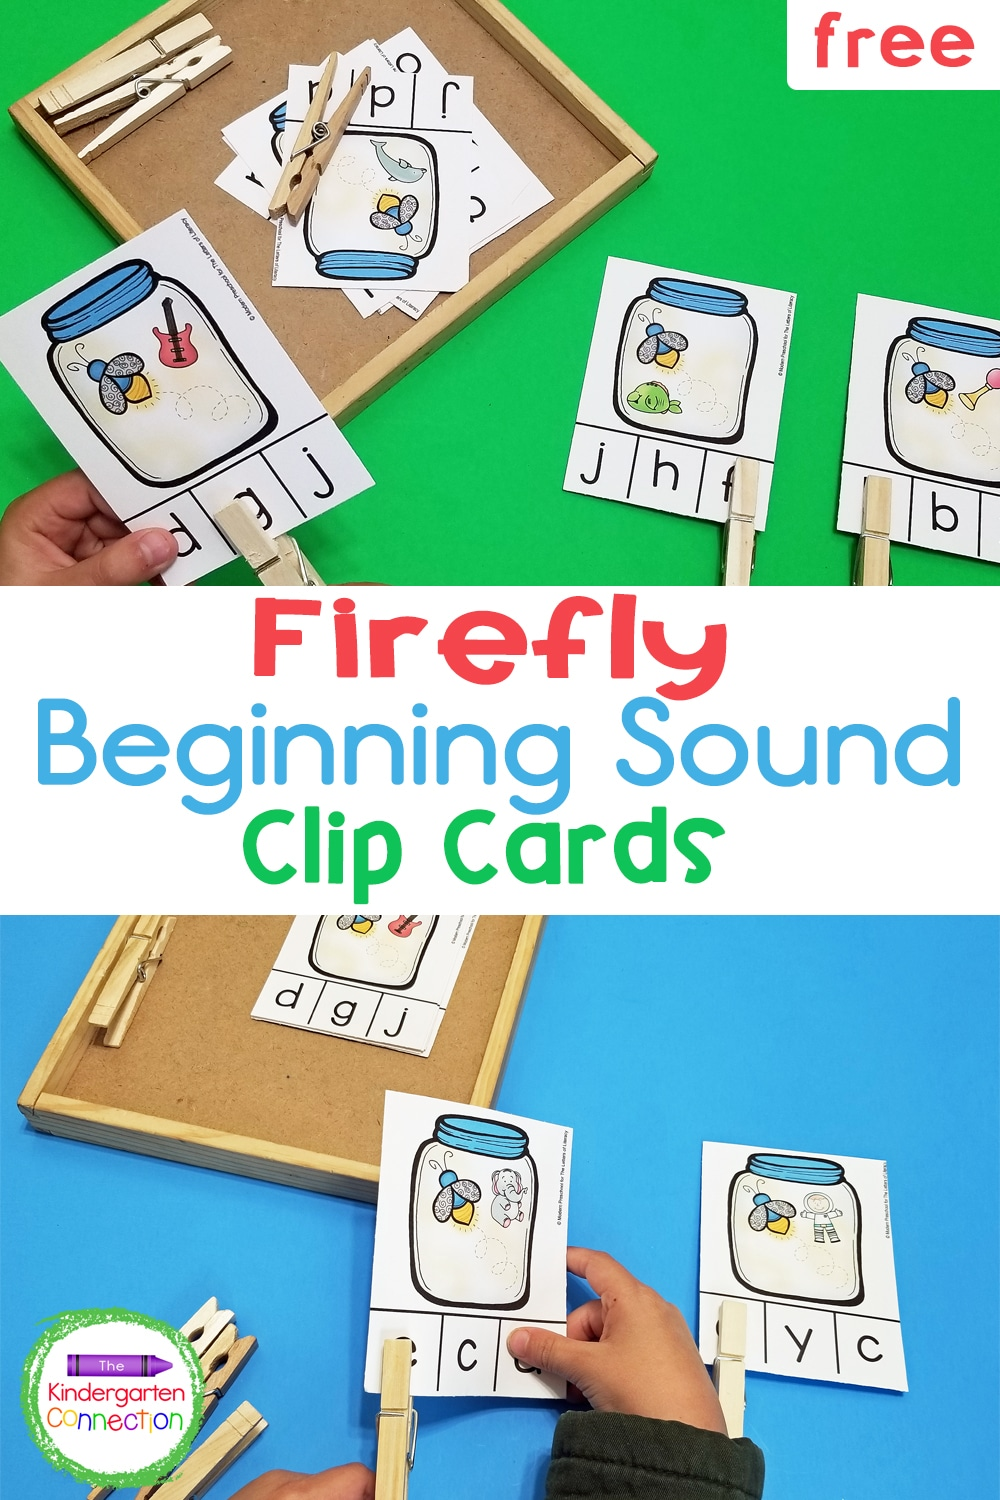 Practice initial sounds and letters with these free Firefly Initial Sound Clip Cards! The firefly theme is perfect for the warm summer months.